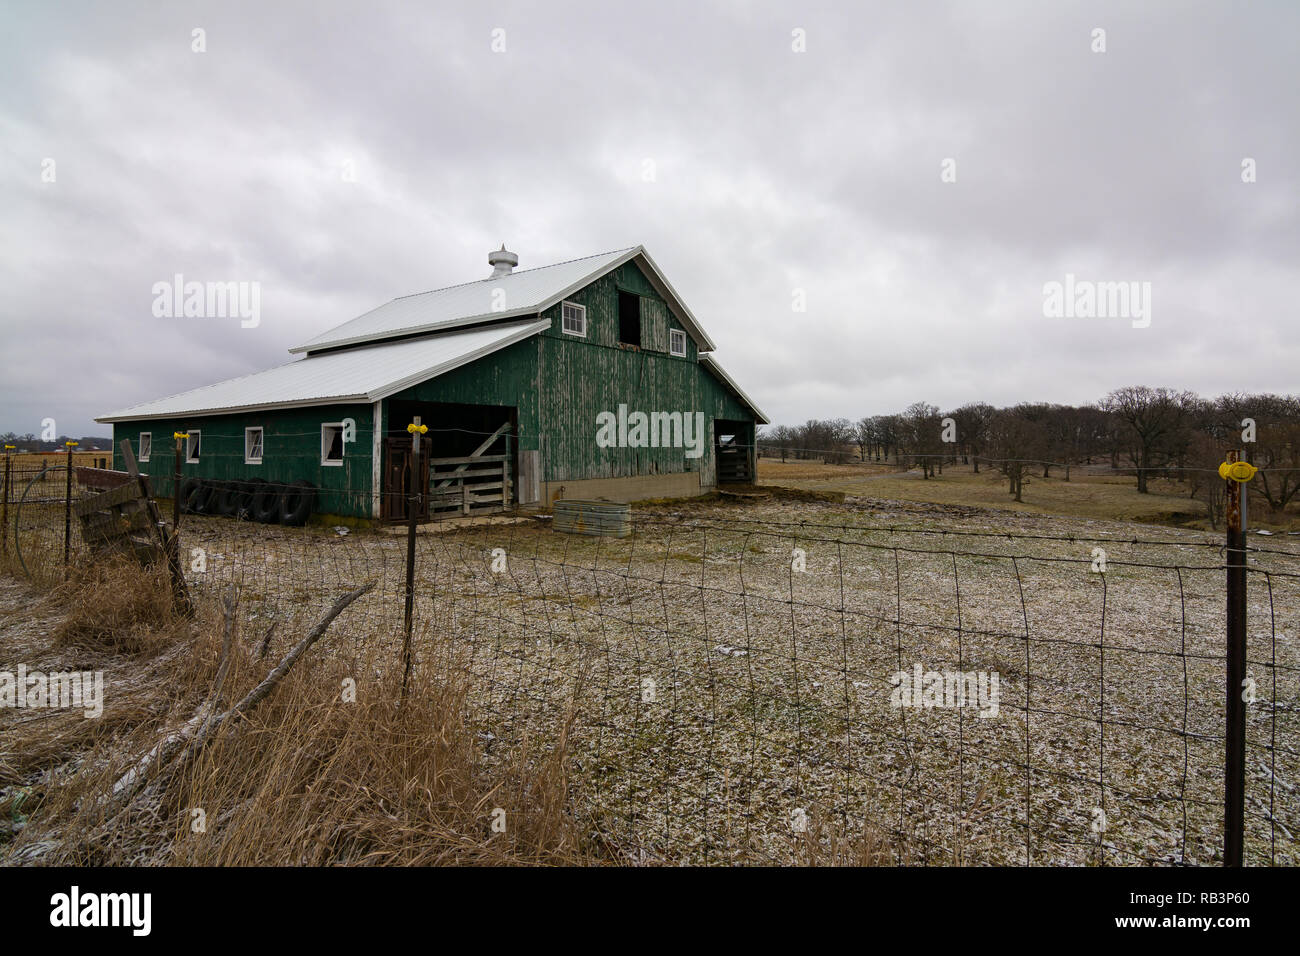 Vintage green barn after a light snow dusting.  Millbrook, Illinois, USA - Stock Image